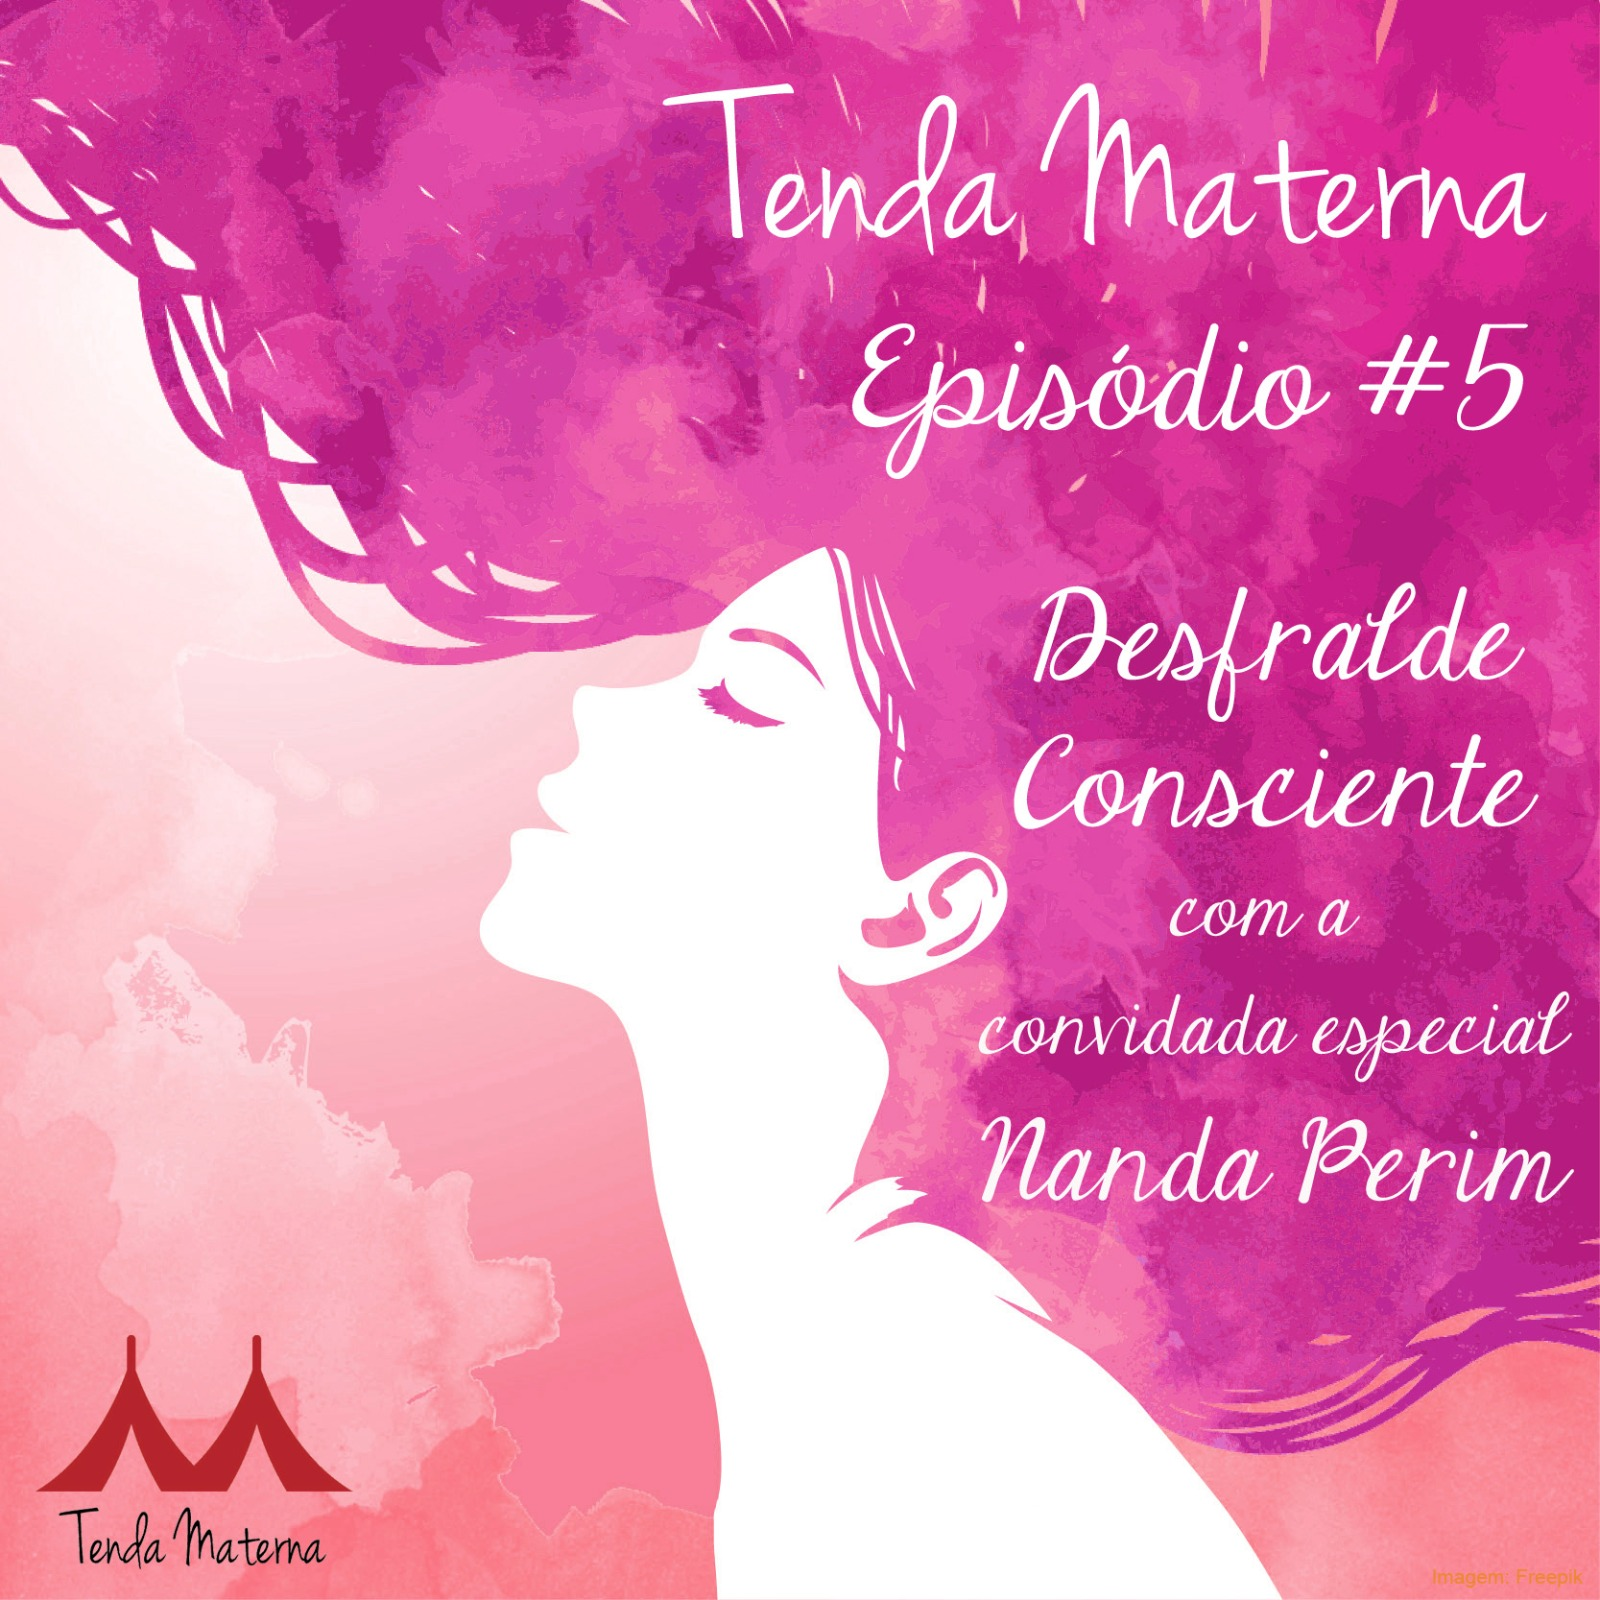 PodCast Tenda Materna #5: Desfralde Consciente